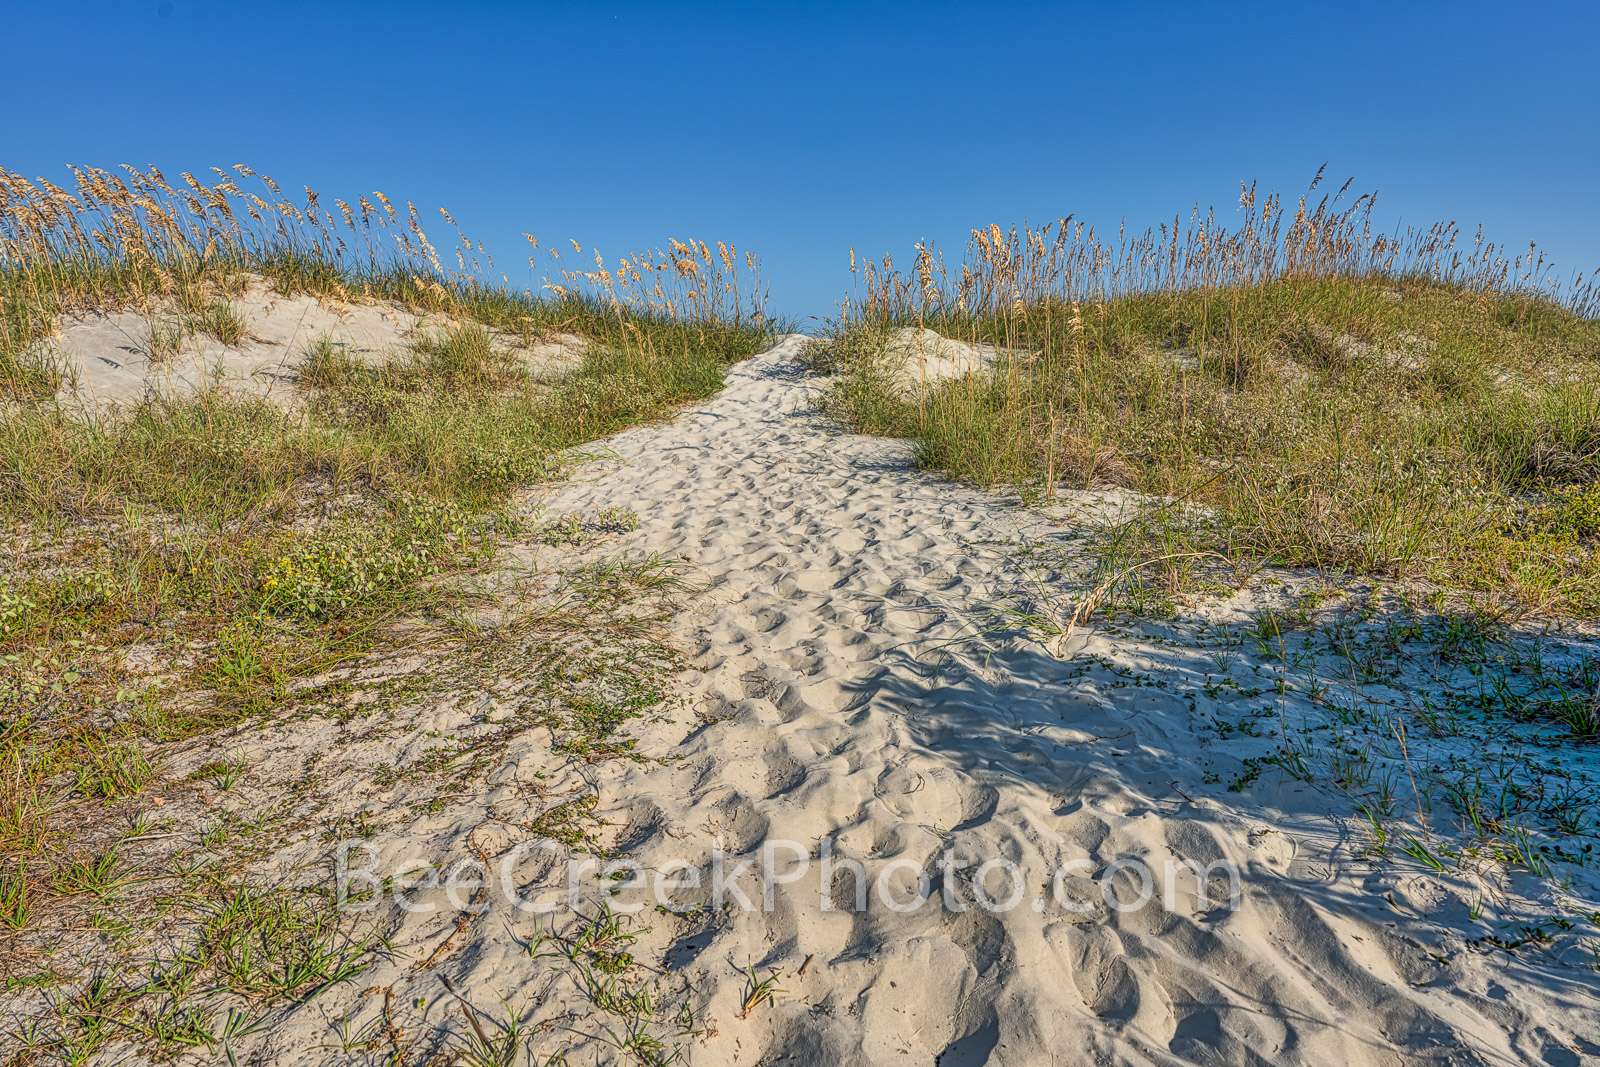 beach, sea oats, dunes, beach, sea grasses, dunes, ocean, surf, georgia coast, coastal, seascape, jekyll island, sand, grasses, ocean, surf, coast, sea, east coast, georgia, golden isles, barrier isla, photo